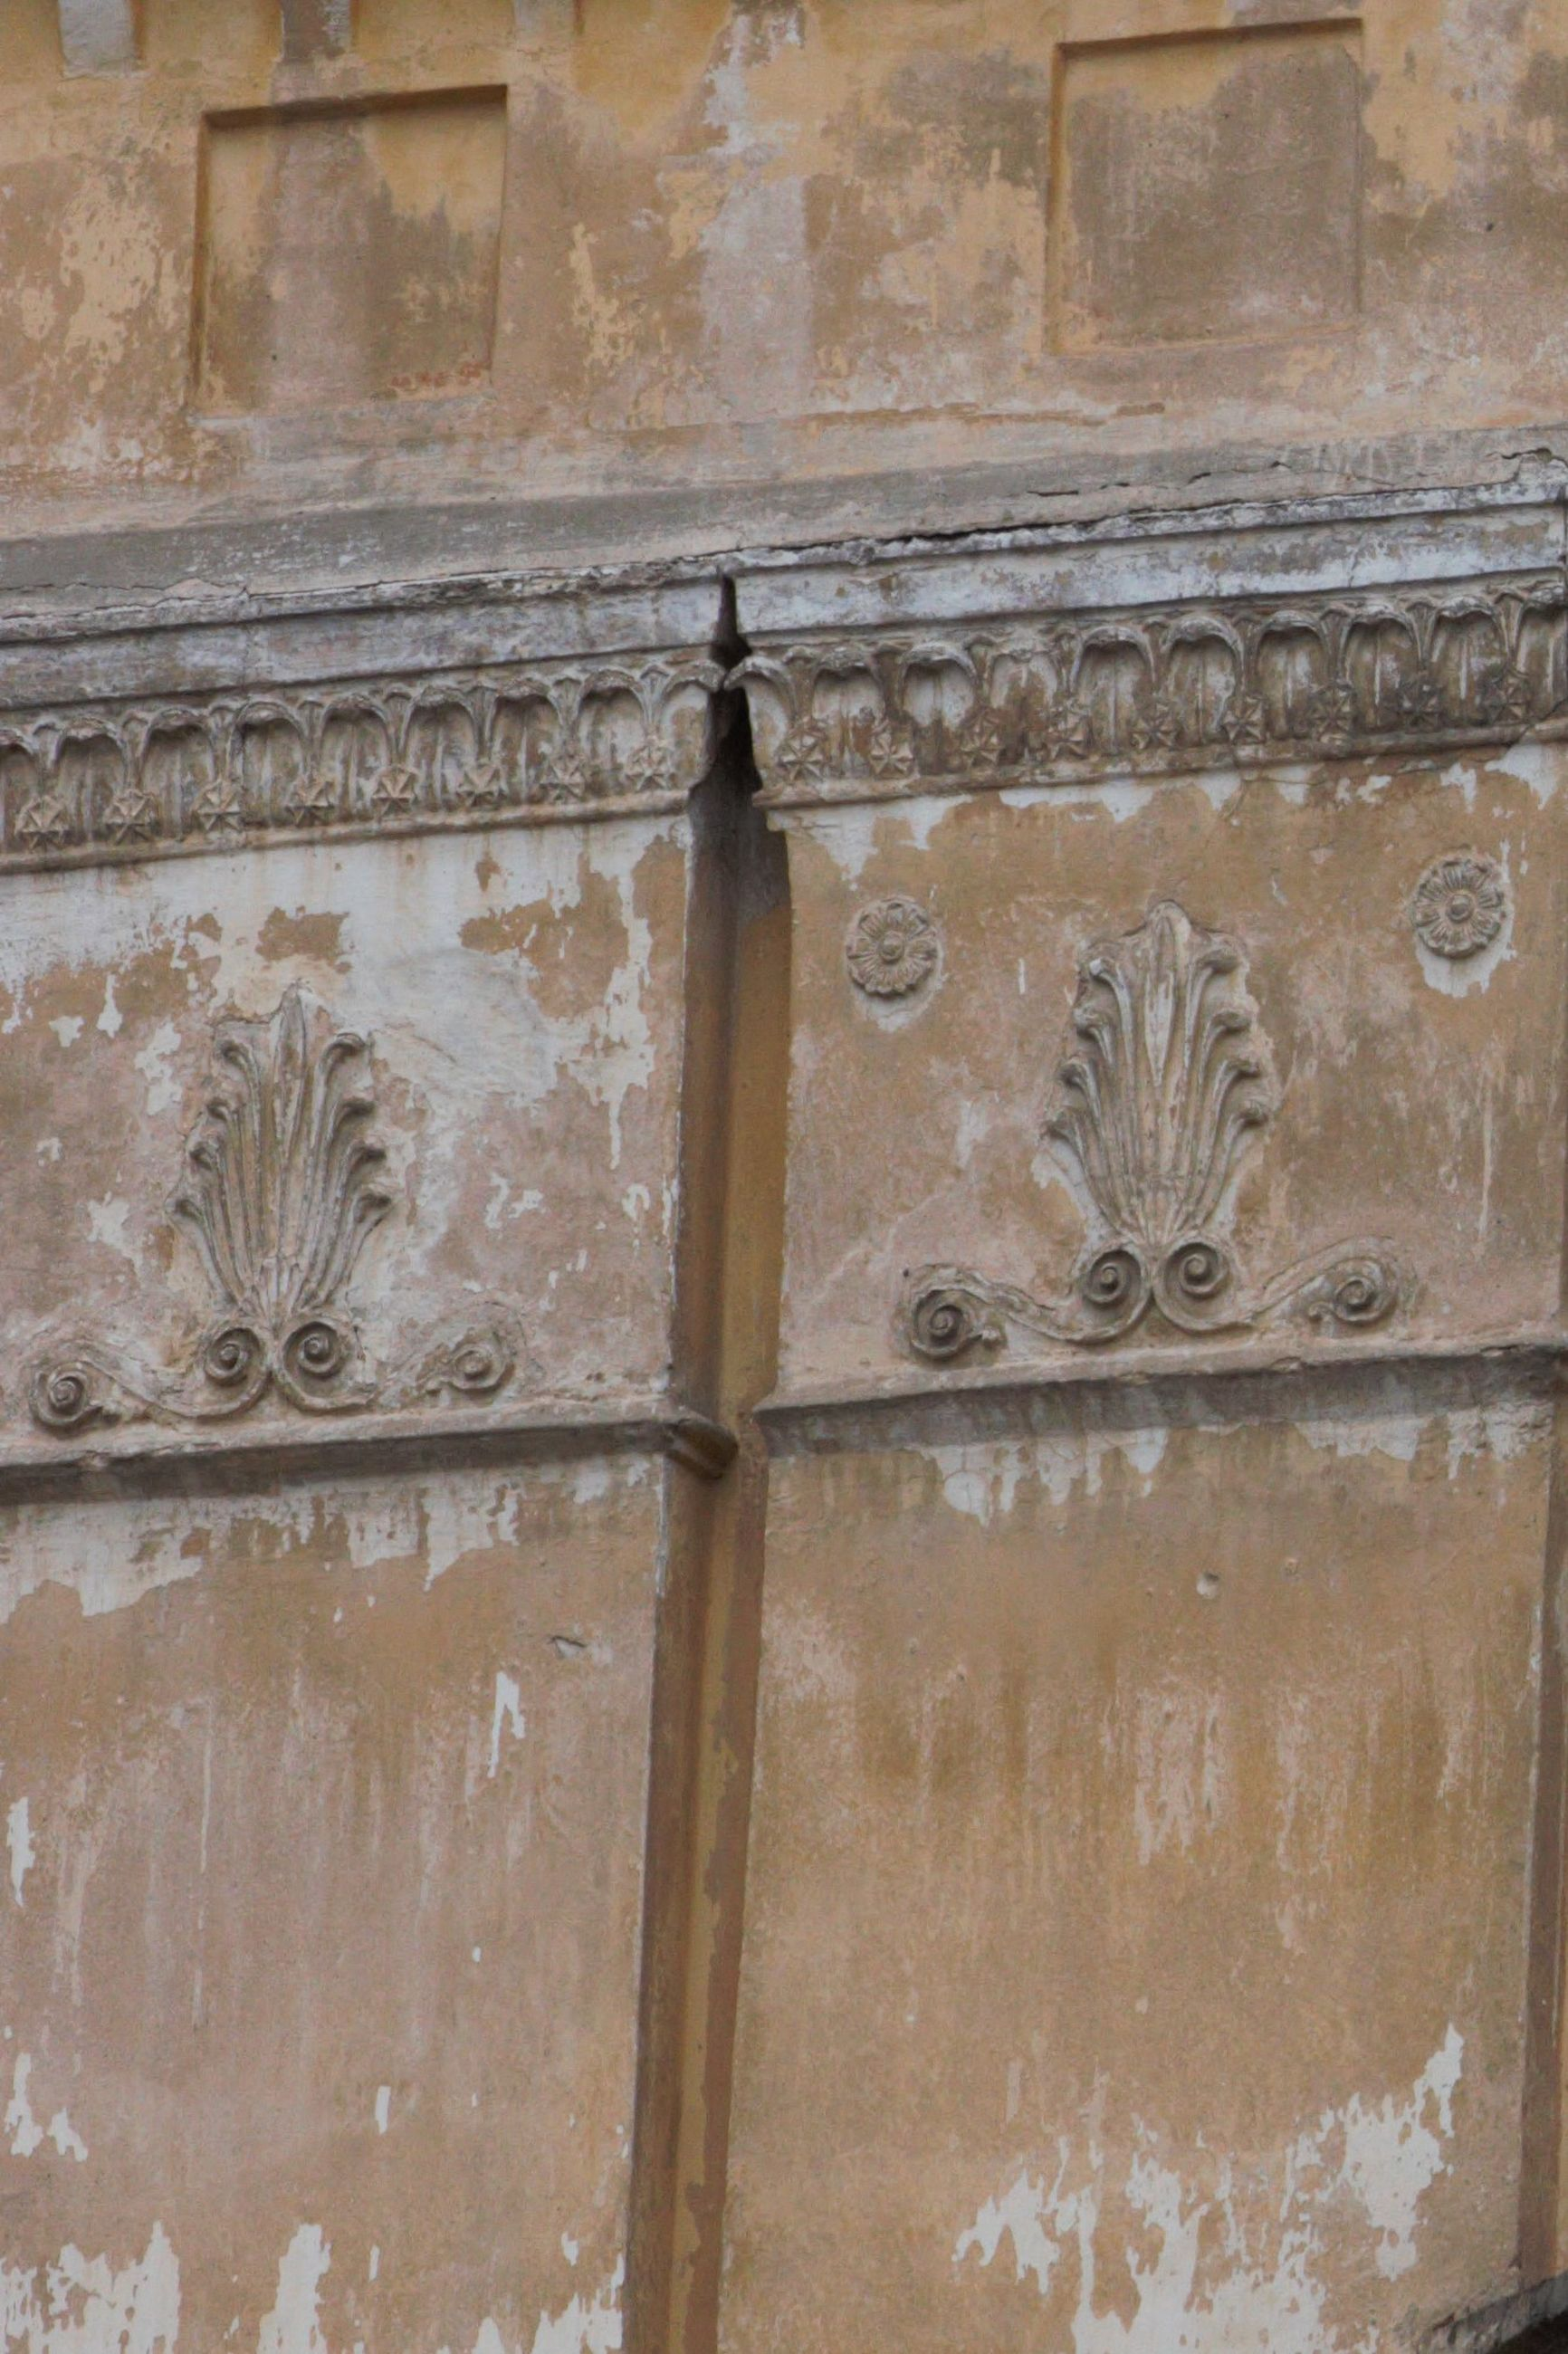 no people, architecture, built structure, old, full frame, backgrounds, day, pattern, building exterior, craft, weathered, design, art and craft, close-up, the past, creativity, history, wall - building feature, door, outdoors, floral pattern, carving, ornate